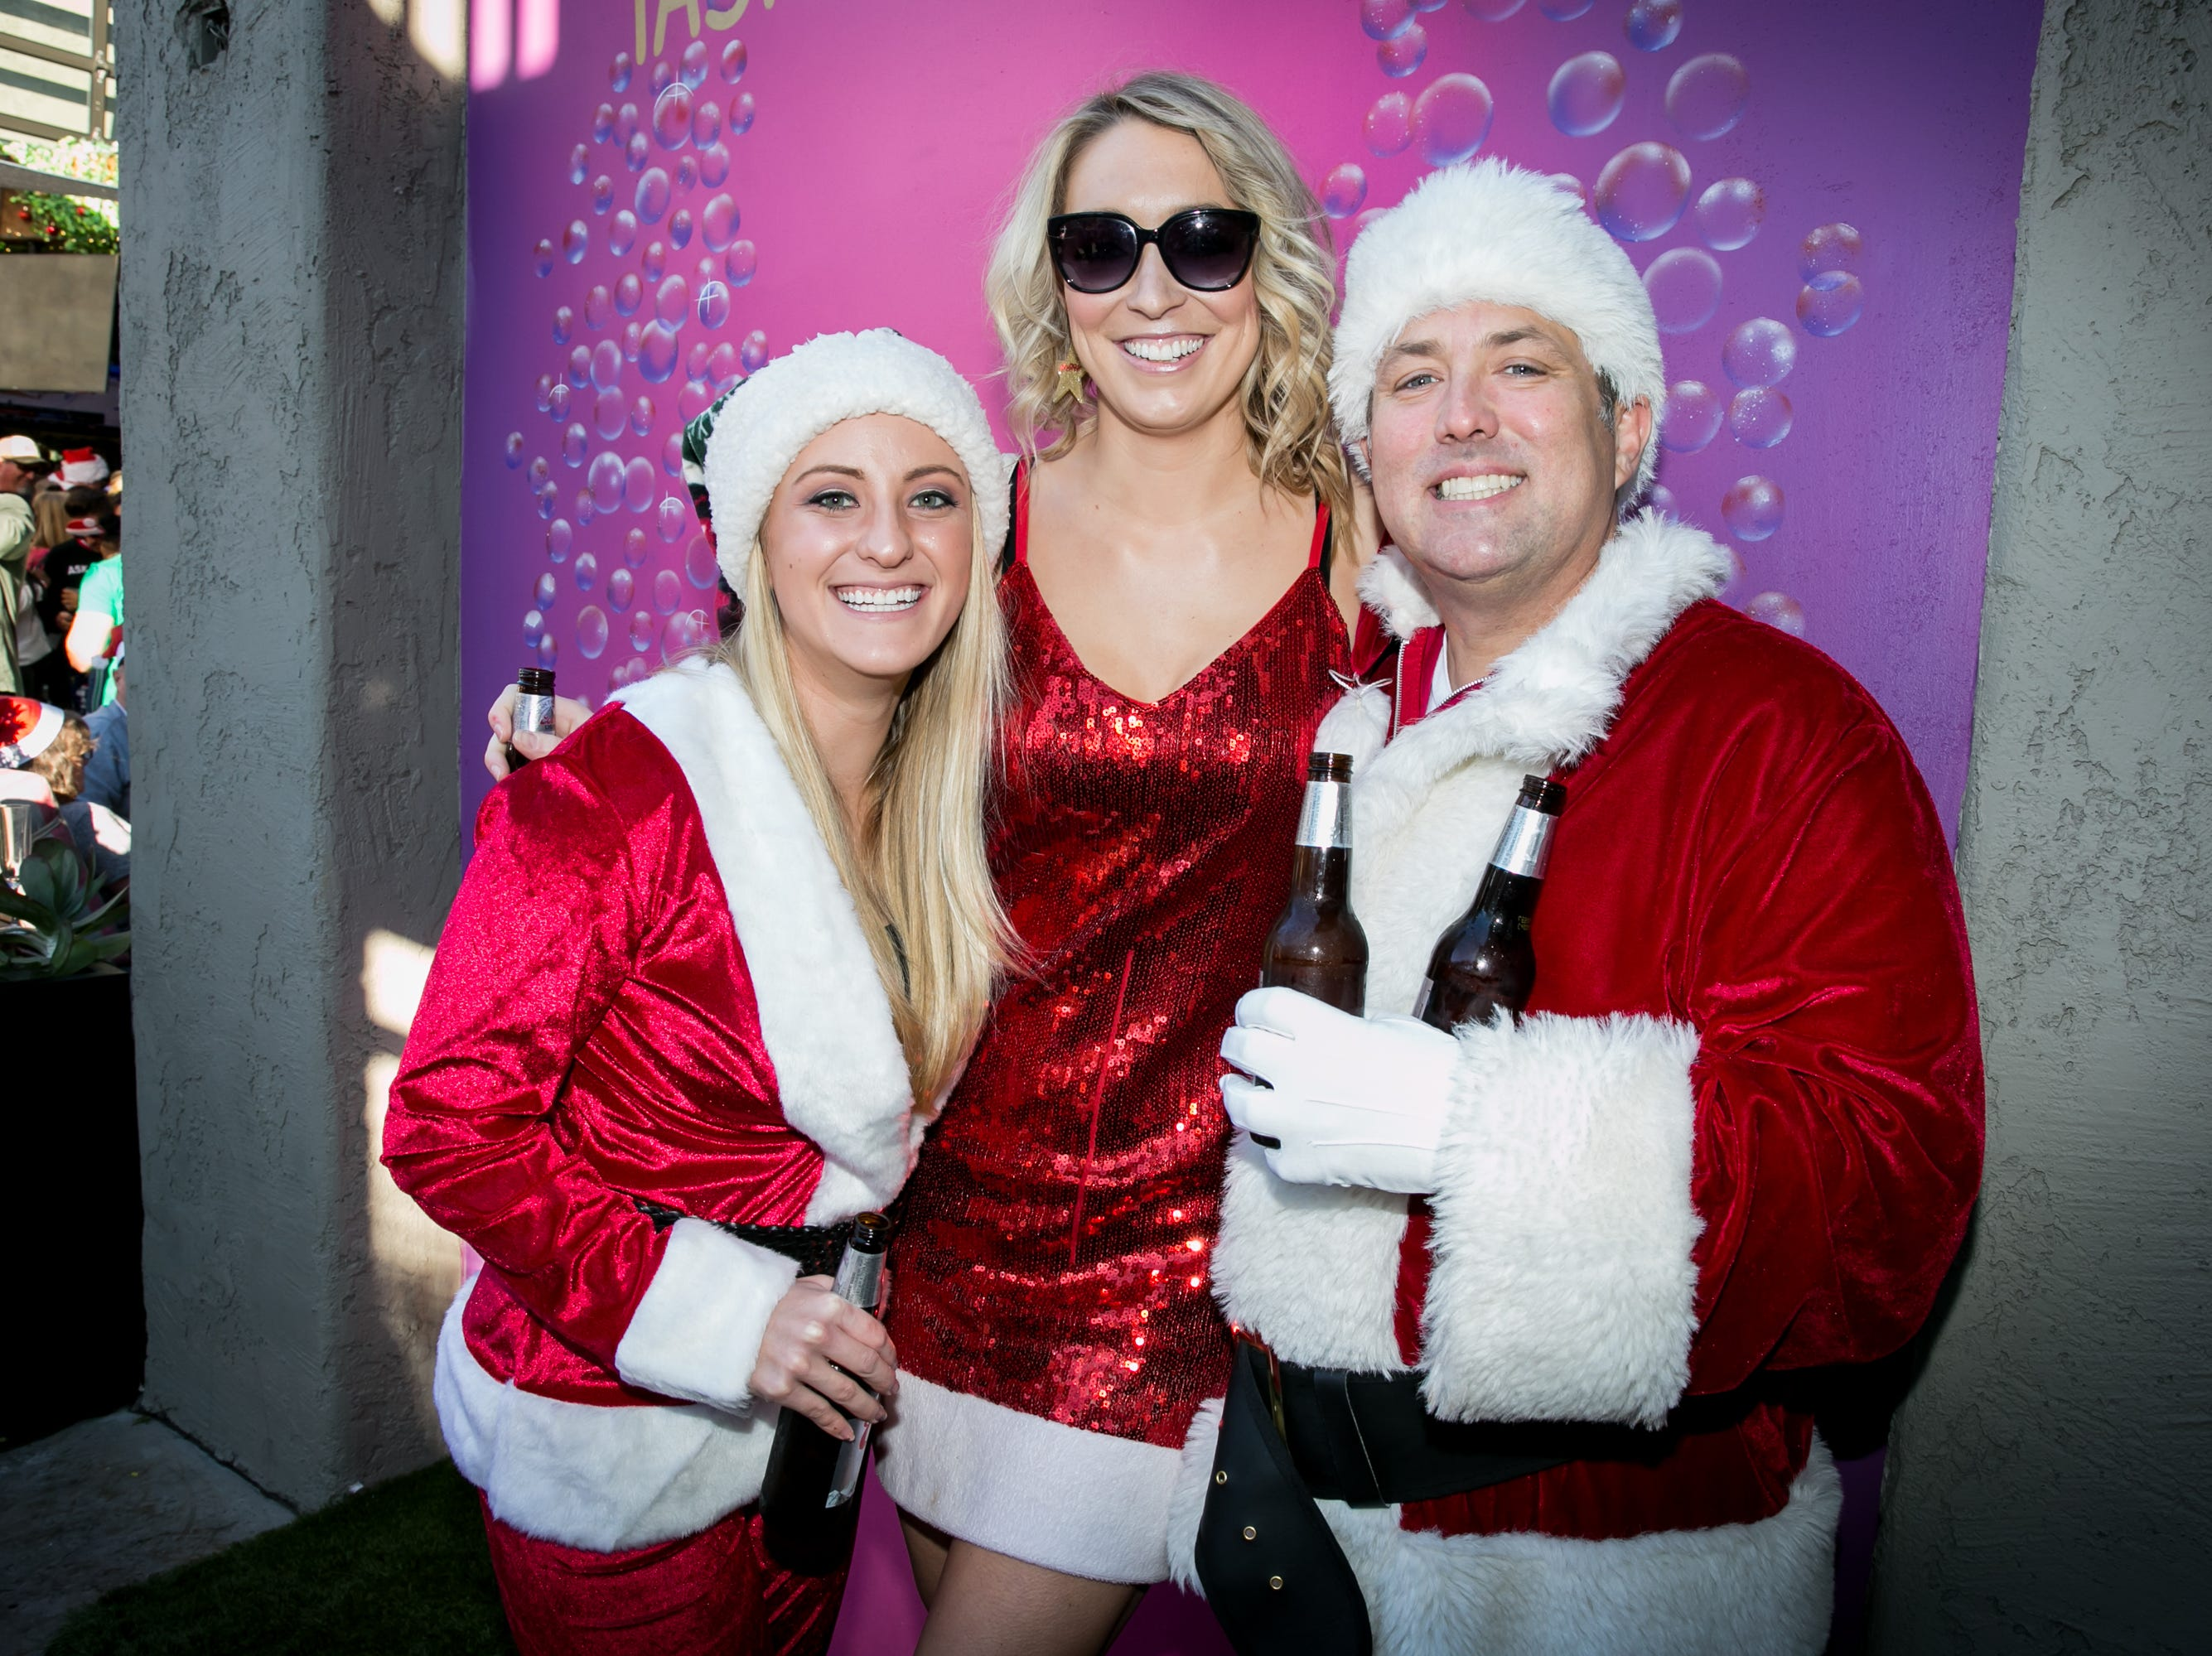 This trio had a blast during the Scottsdale Santa Crawl at Wasted Grain on Saturday, December 8, 2018.